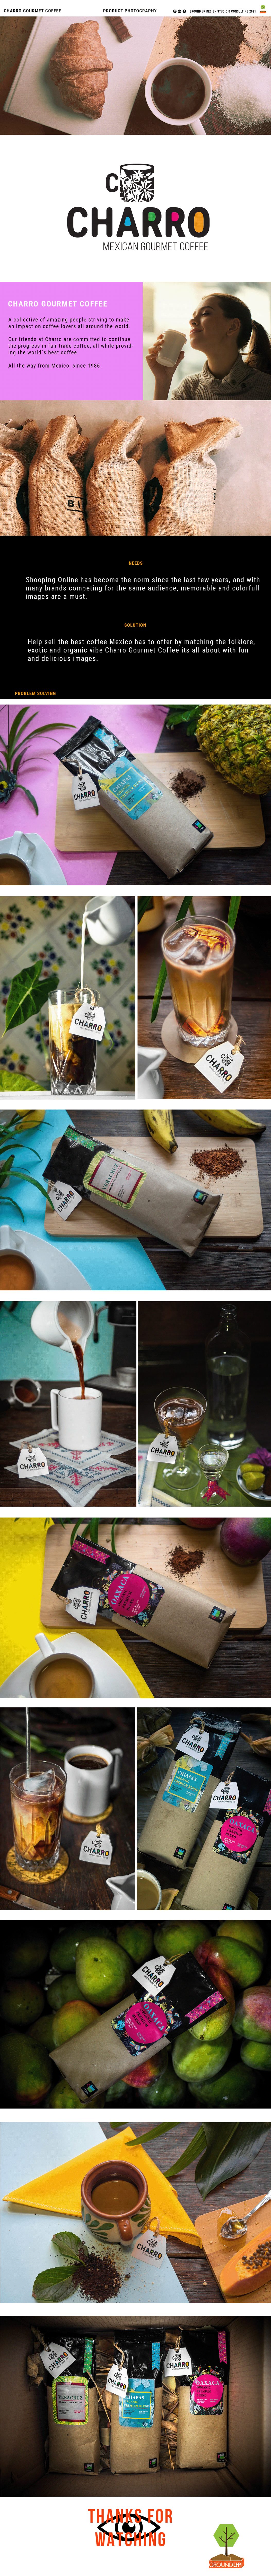 charro Coffee design mexico package photo product